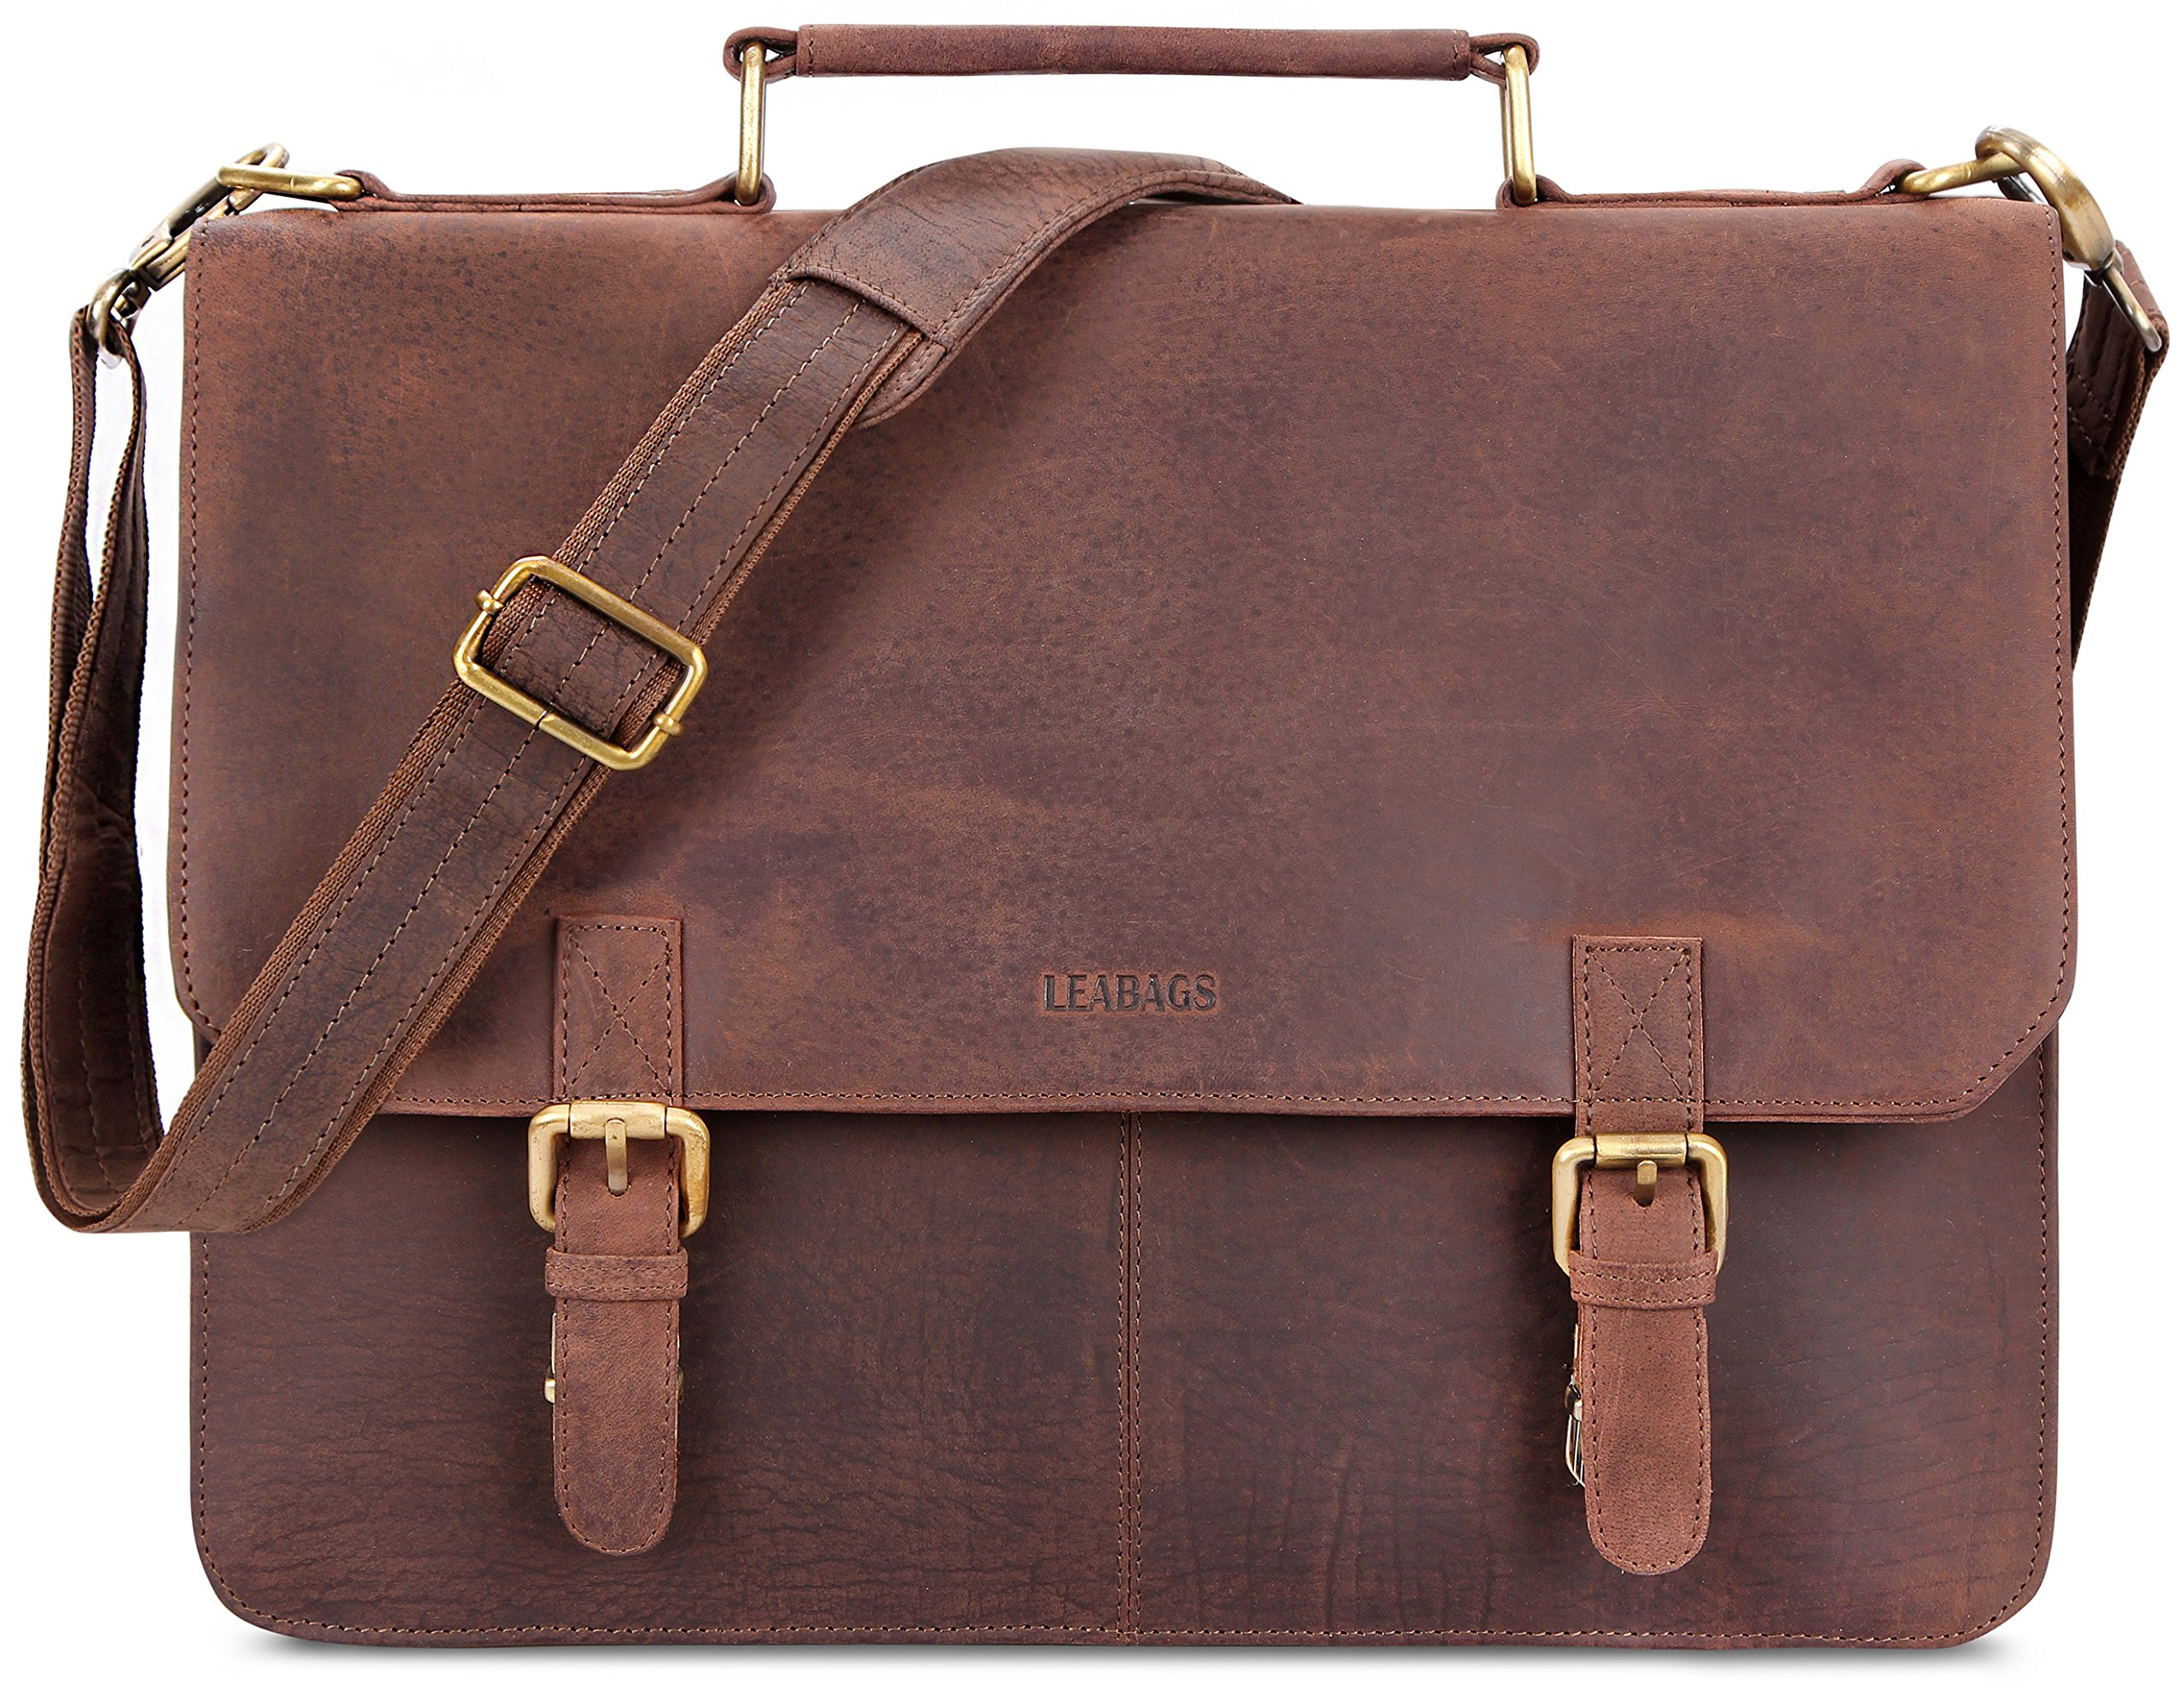 LEABAGS Gainsville genuine buffalo leather briefcase in vintage style - Nutmeg